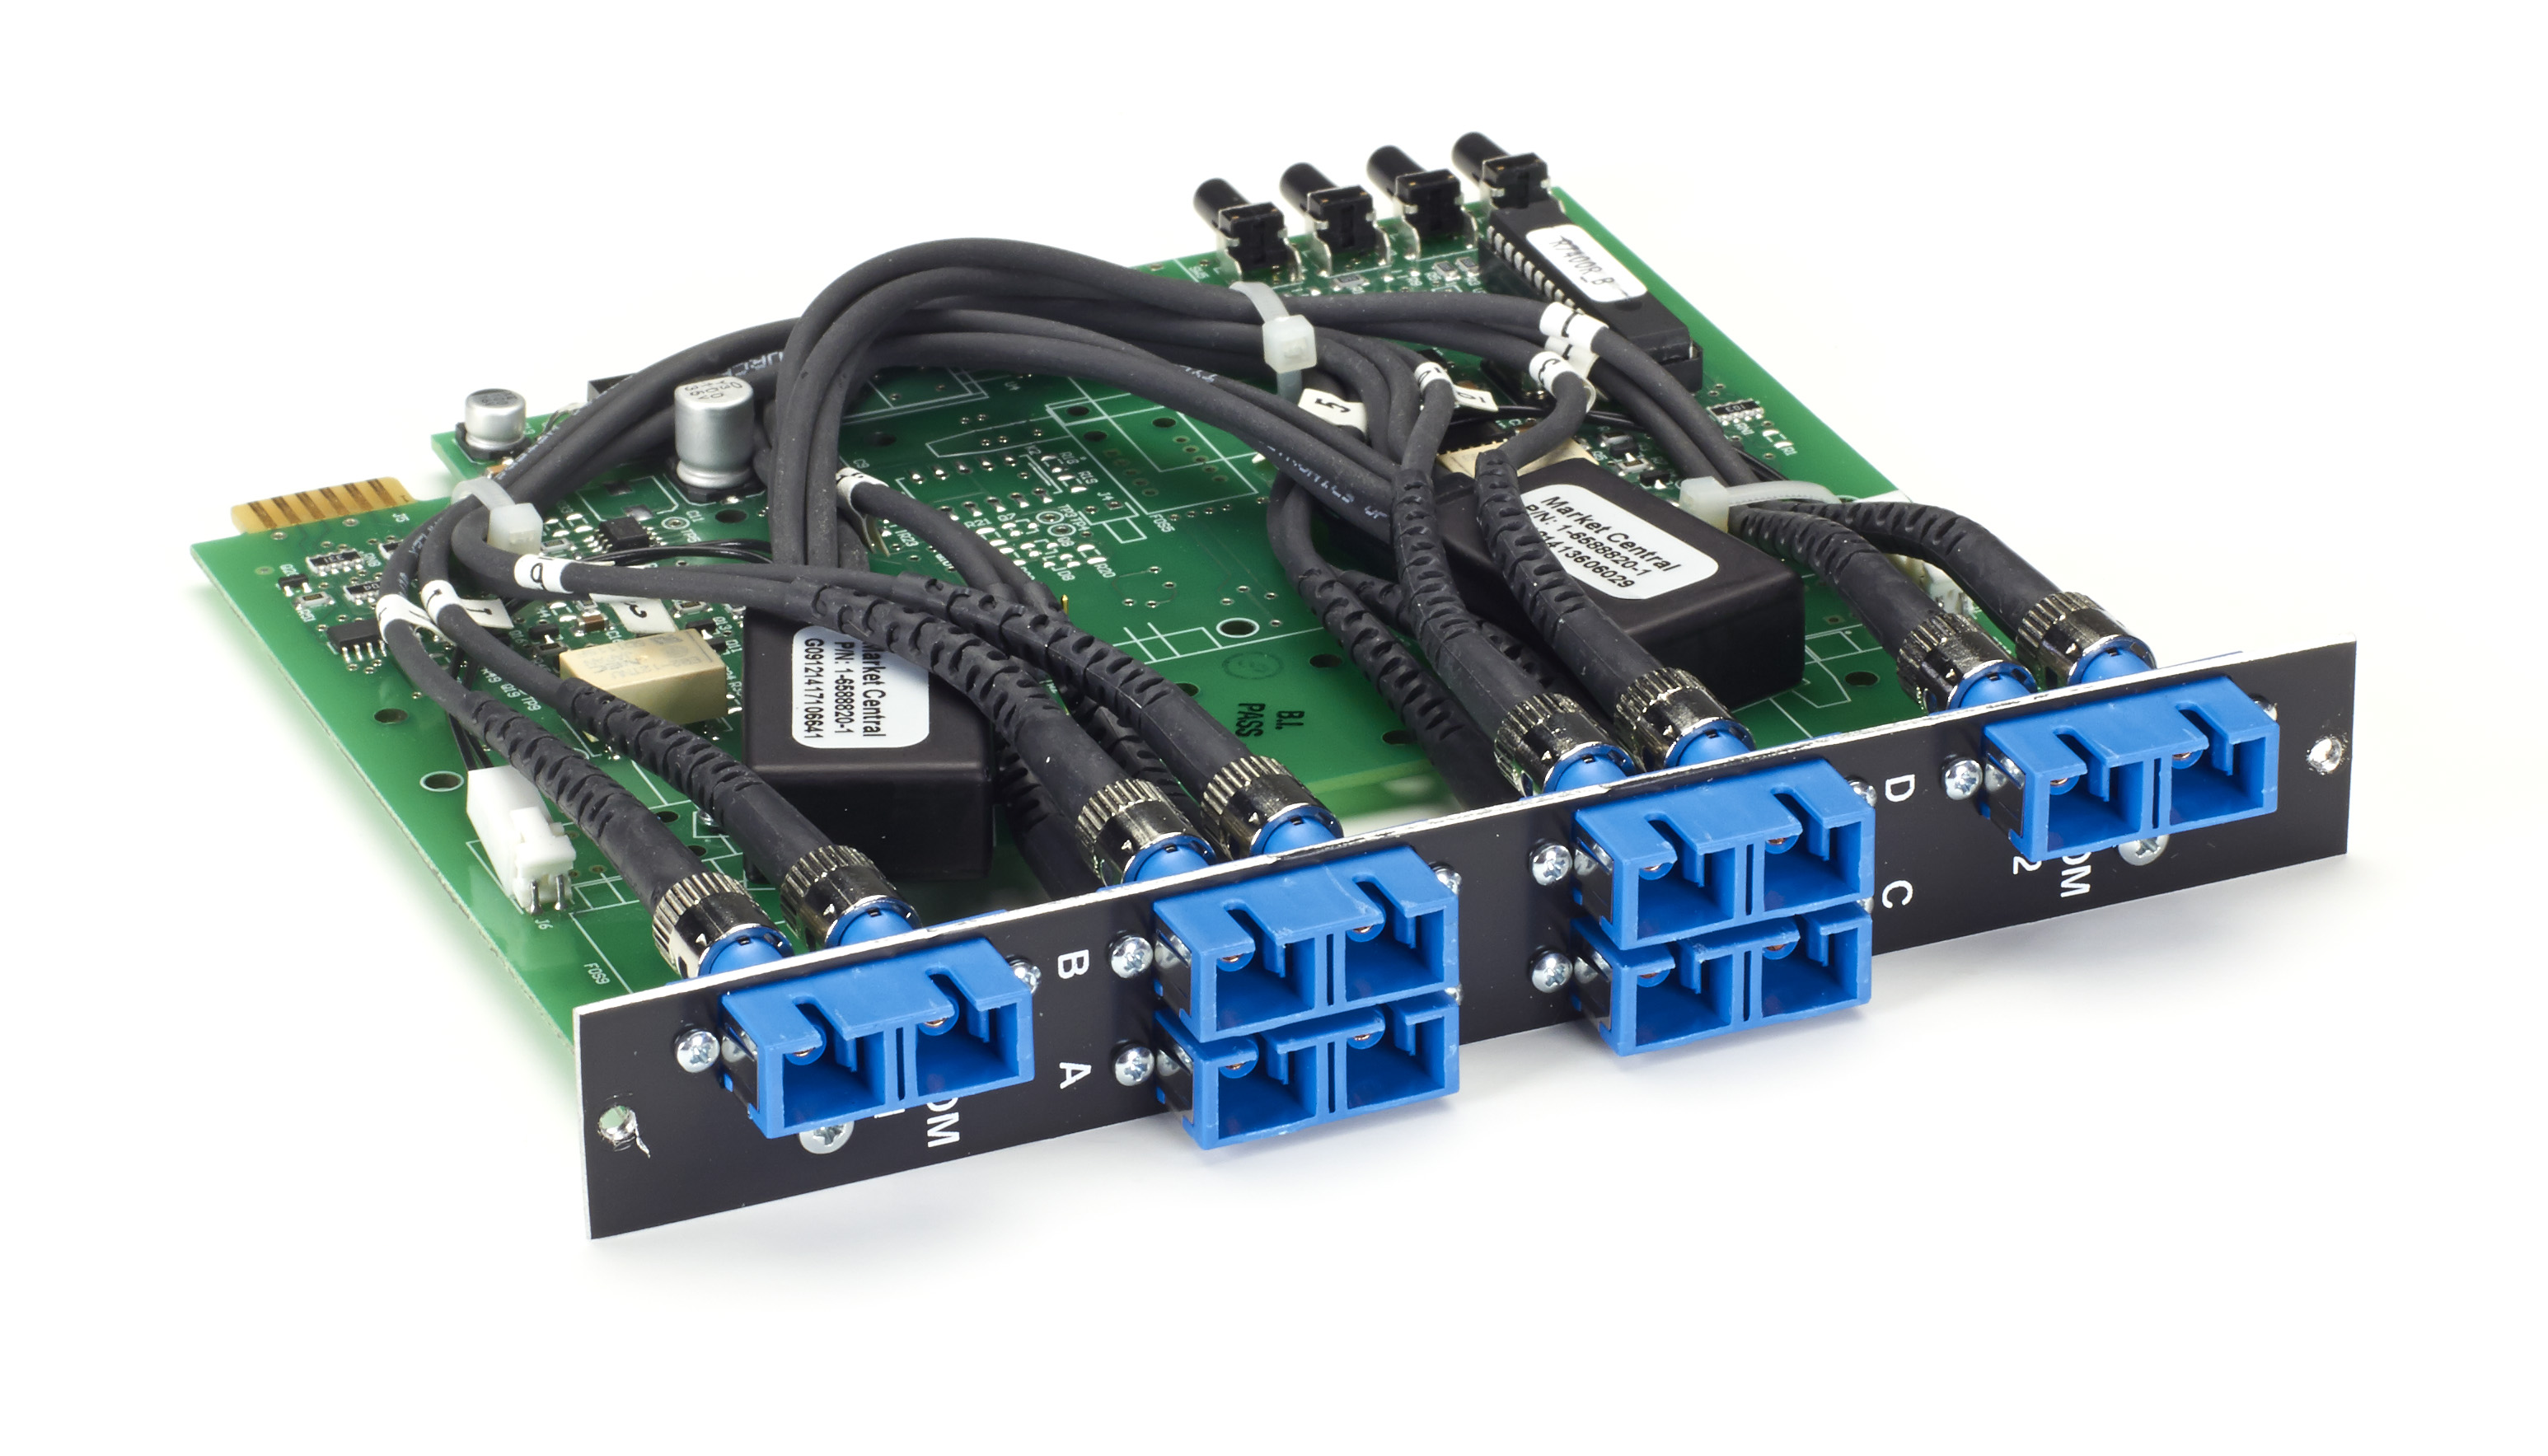 Pro Switching System Multi Switch Card - Fiber Multimode, 3-to-1, Latching